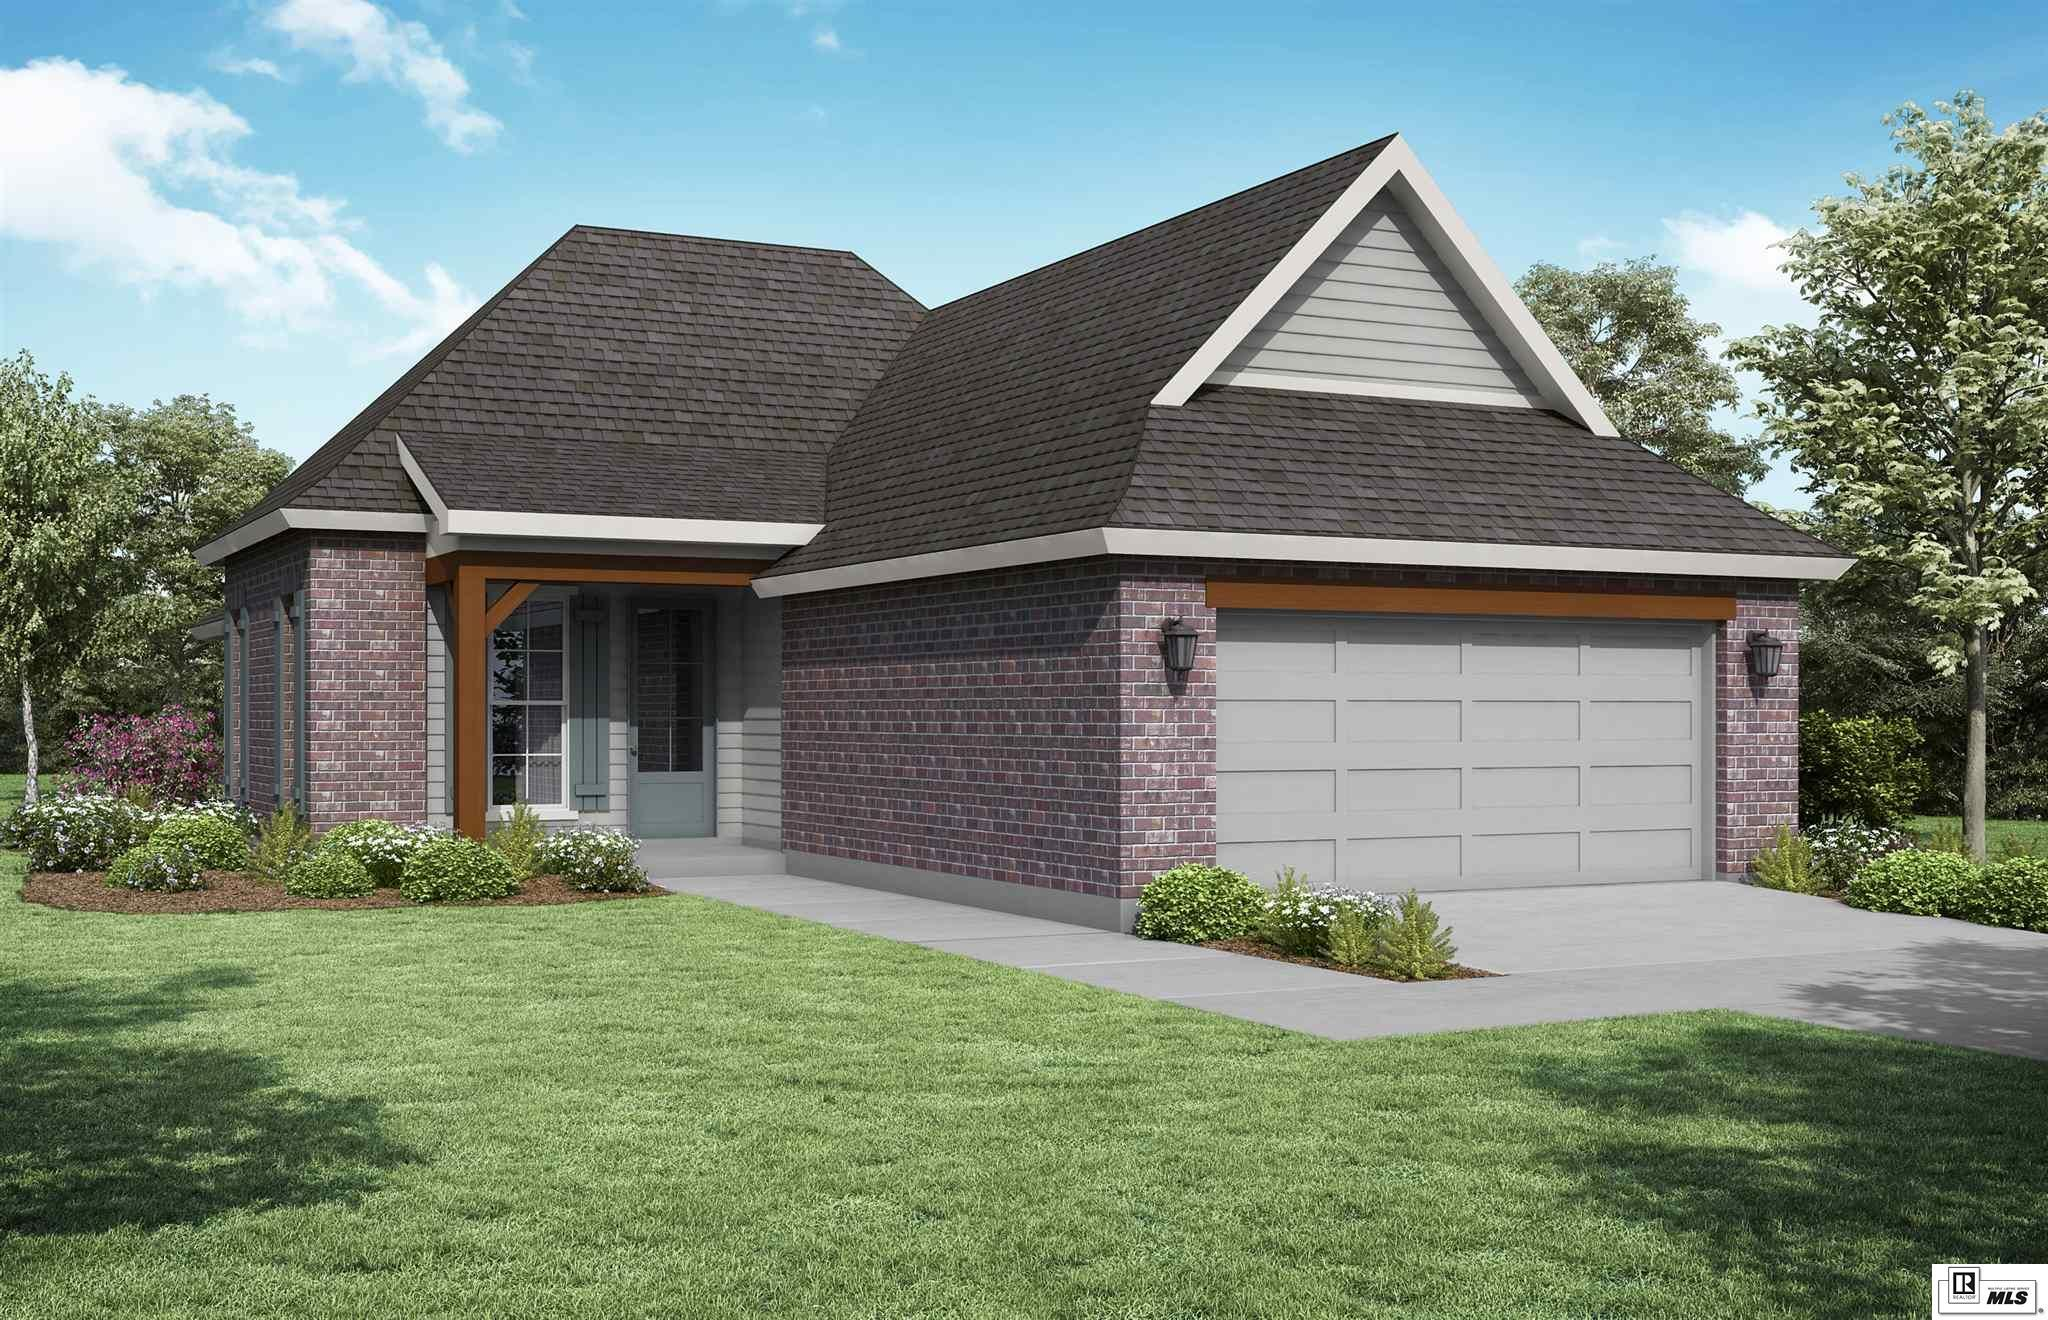 Are You Still Looking For A New Home Under 300k This New